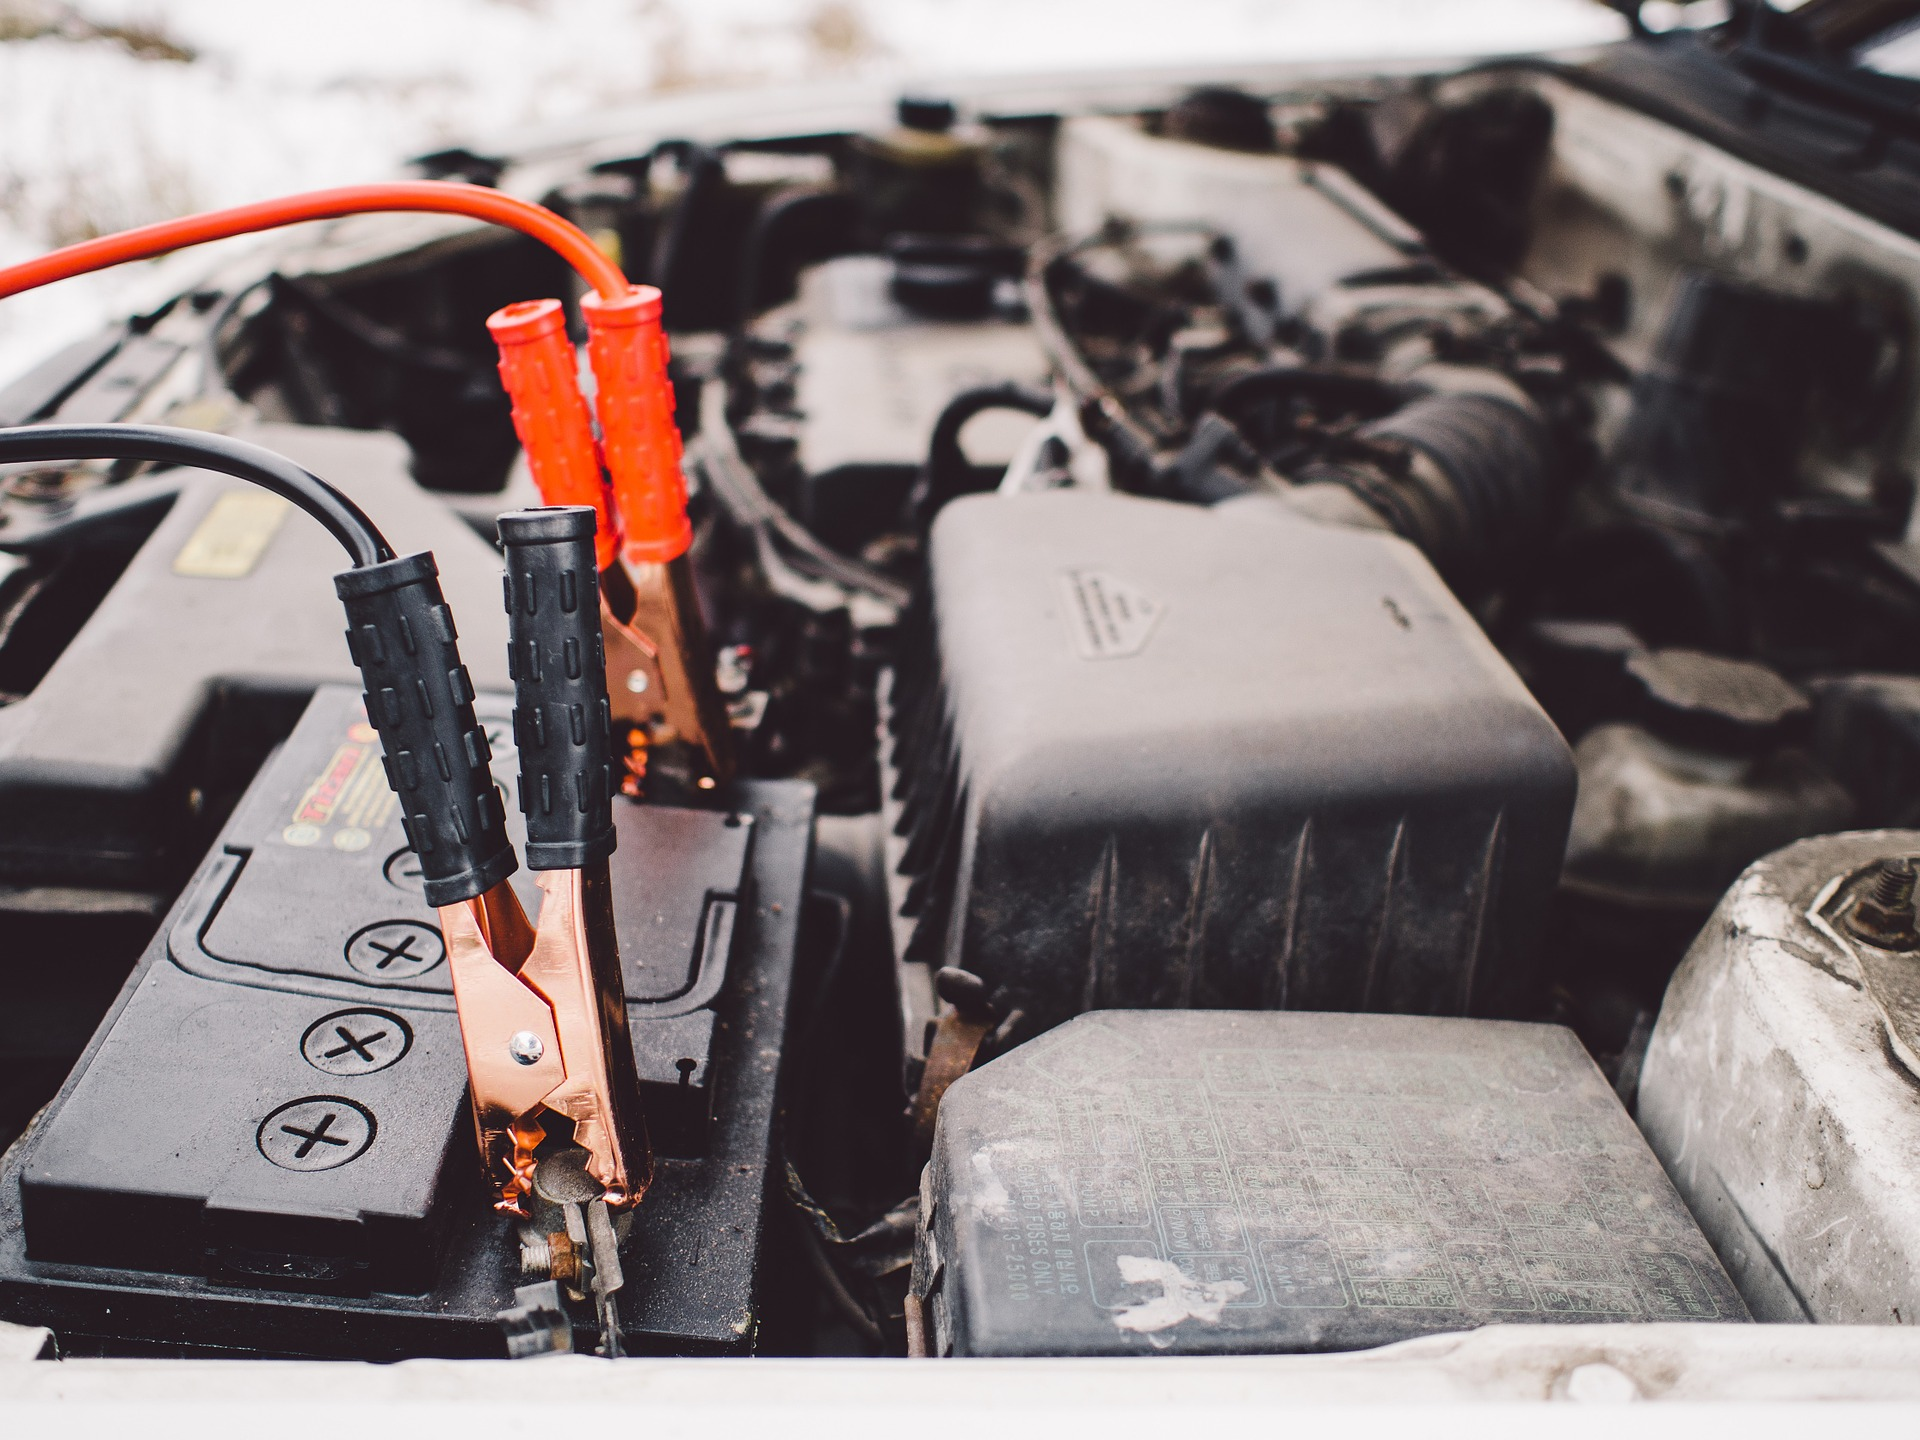 Best Jumper Cables   Disclaimer: There are affiliate links in this post. This means that at no cost to you, I will receive a small commission if you purchase through my link. I will only ever promote the products and services that I trust and 100% recommend. You may read my full  disclosure policy  for more information. Thanks for supporting my business in this way.